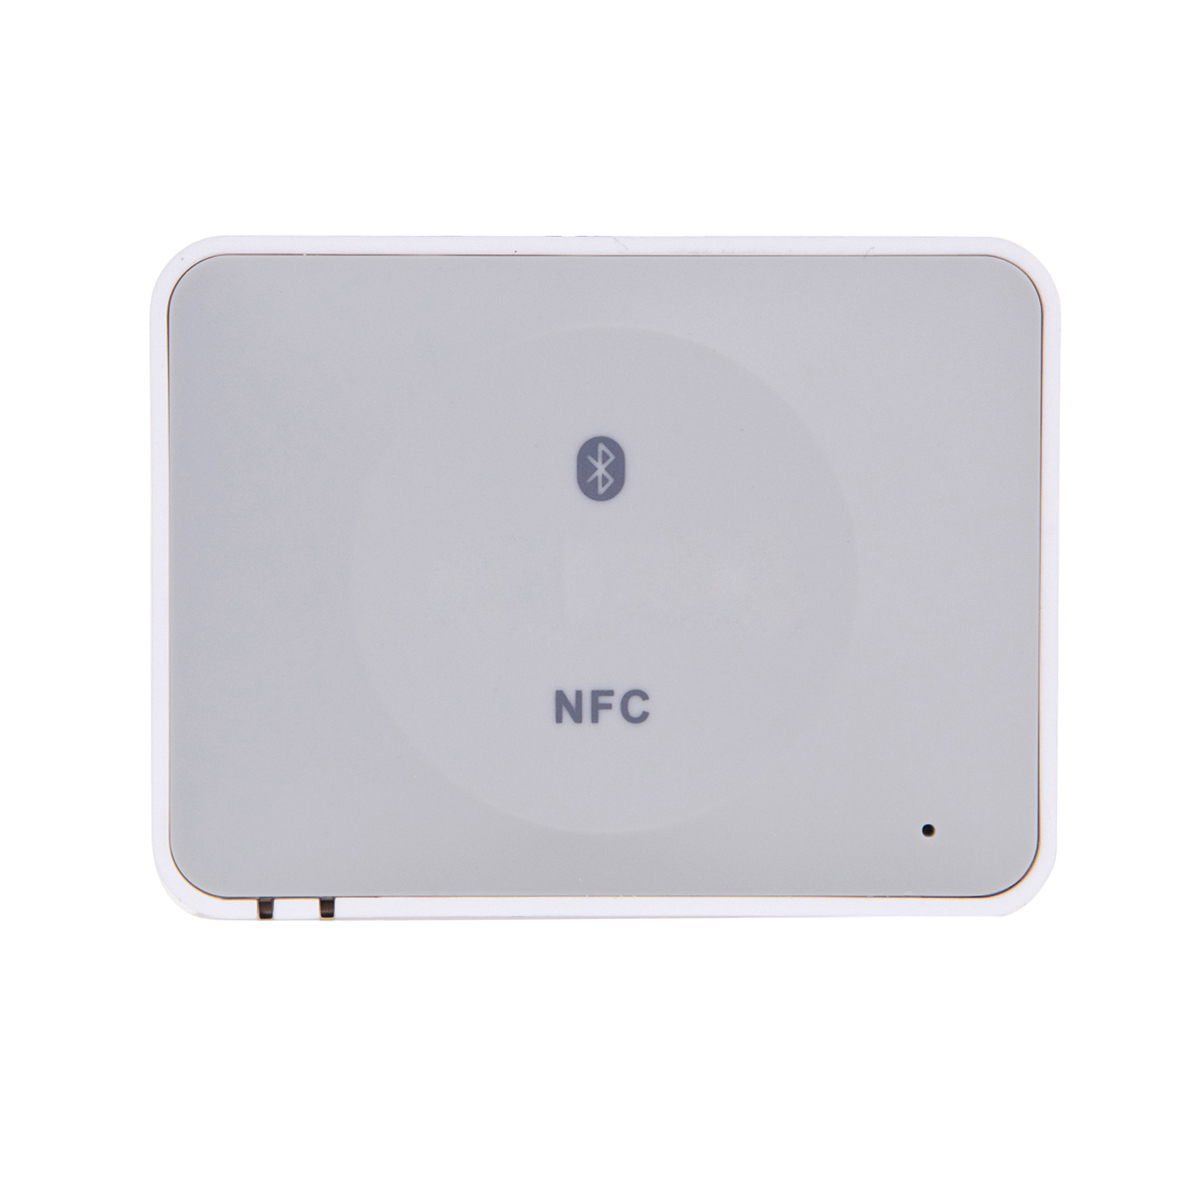 Seenda IBT-08 NFC Bluetooth Receiver for iOS/Android